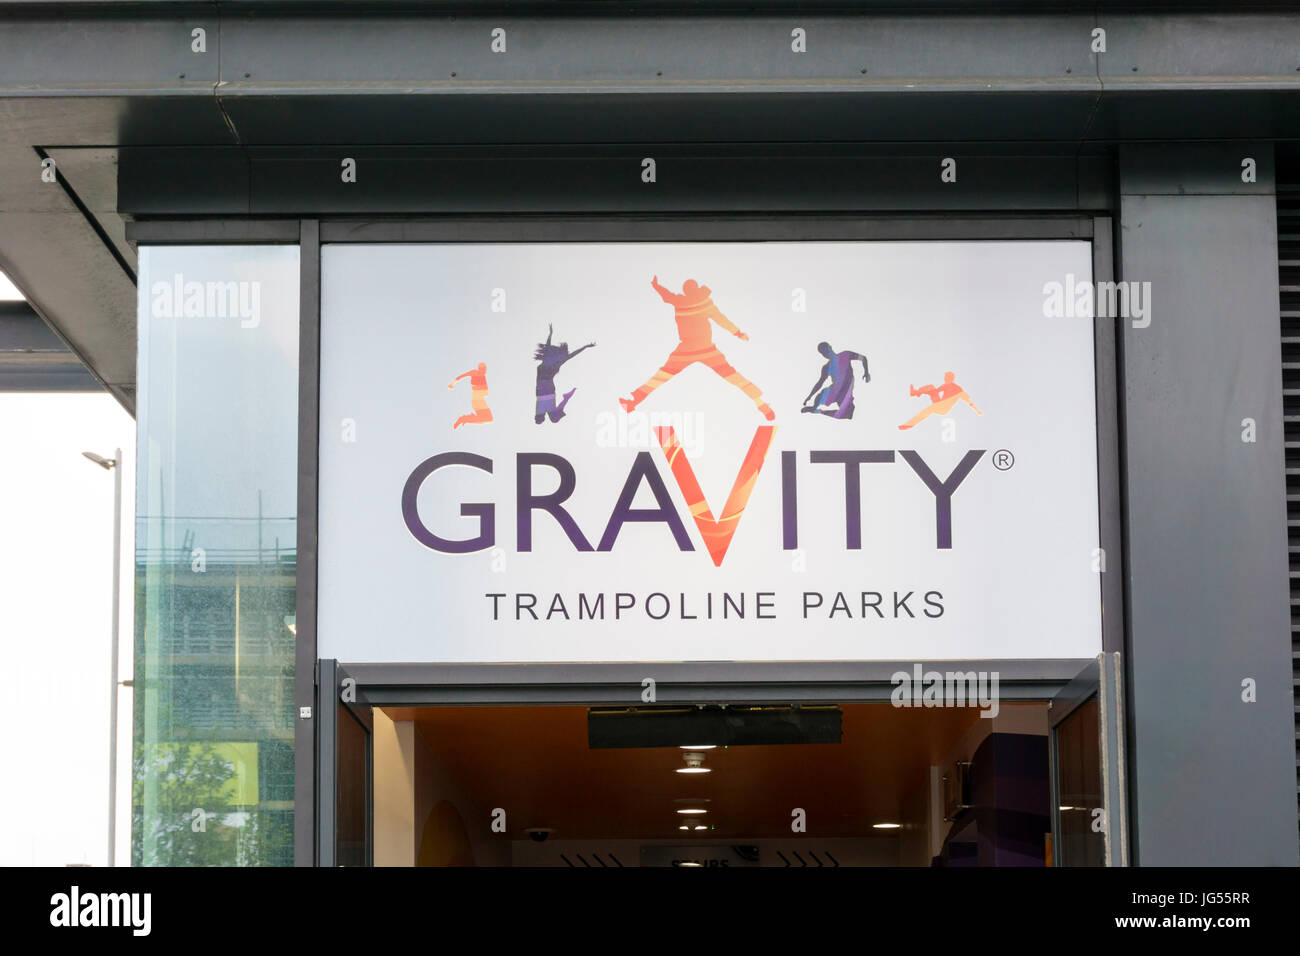 Sign for Gravity Trampoline Parks at St Stephen's Shopping Centre, Hull. - Stock Image